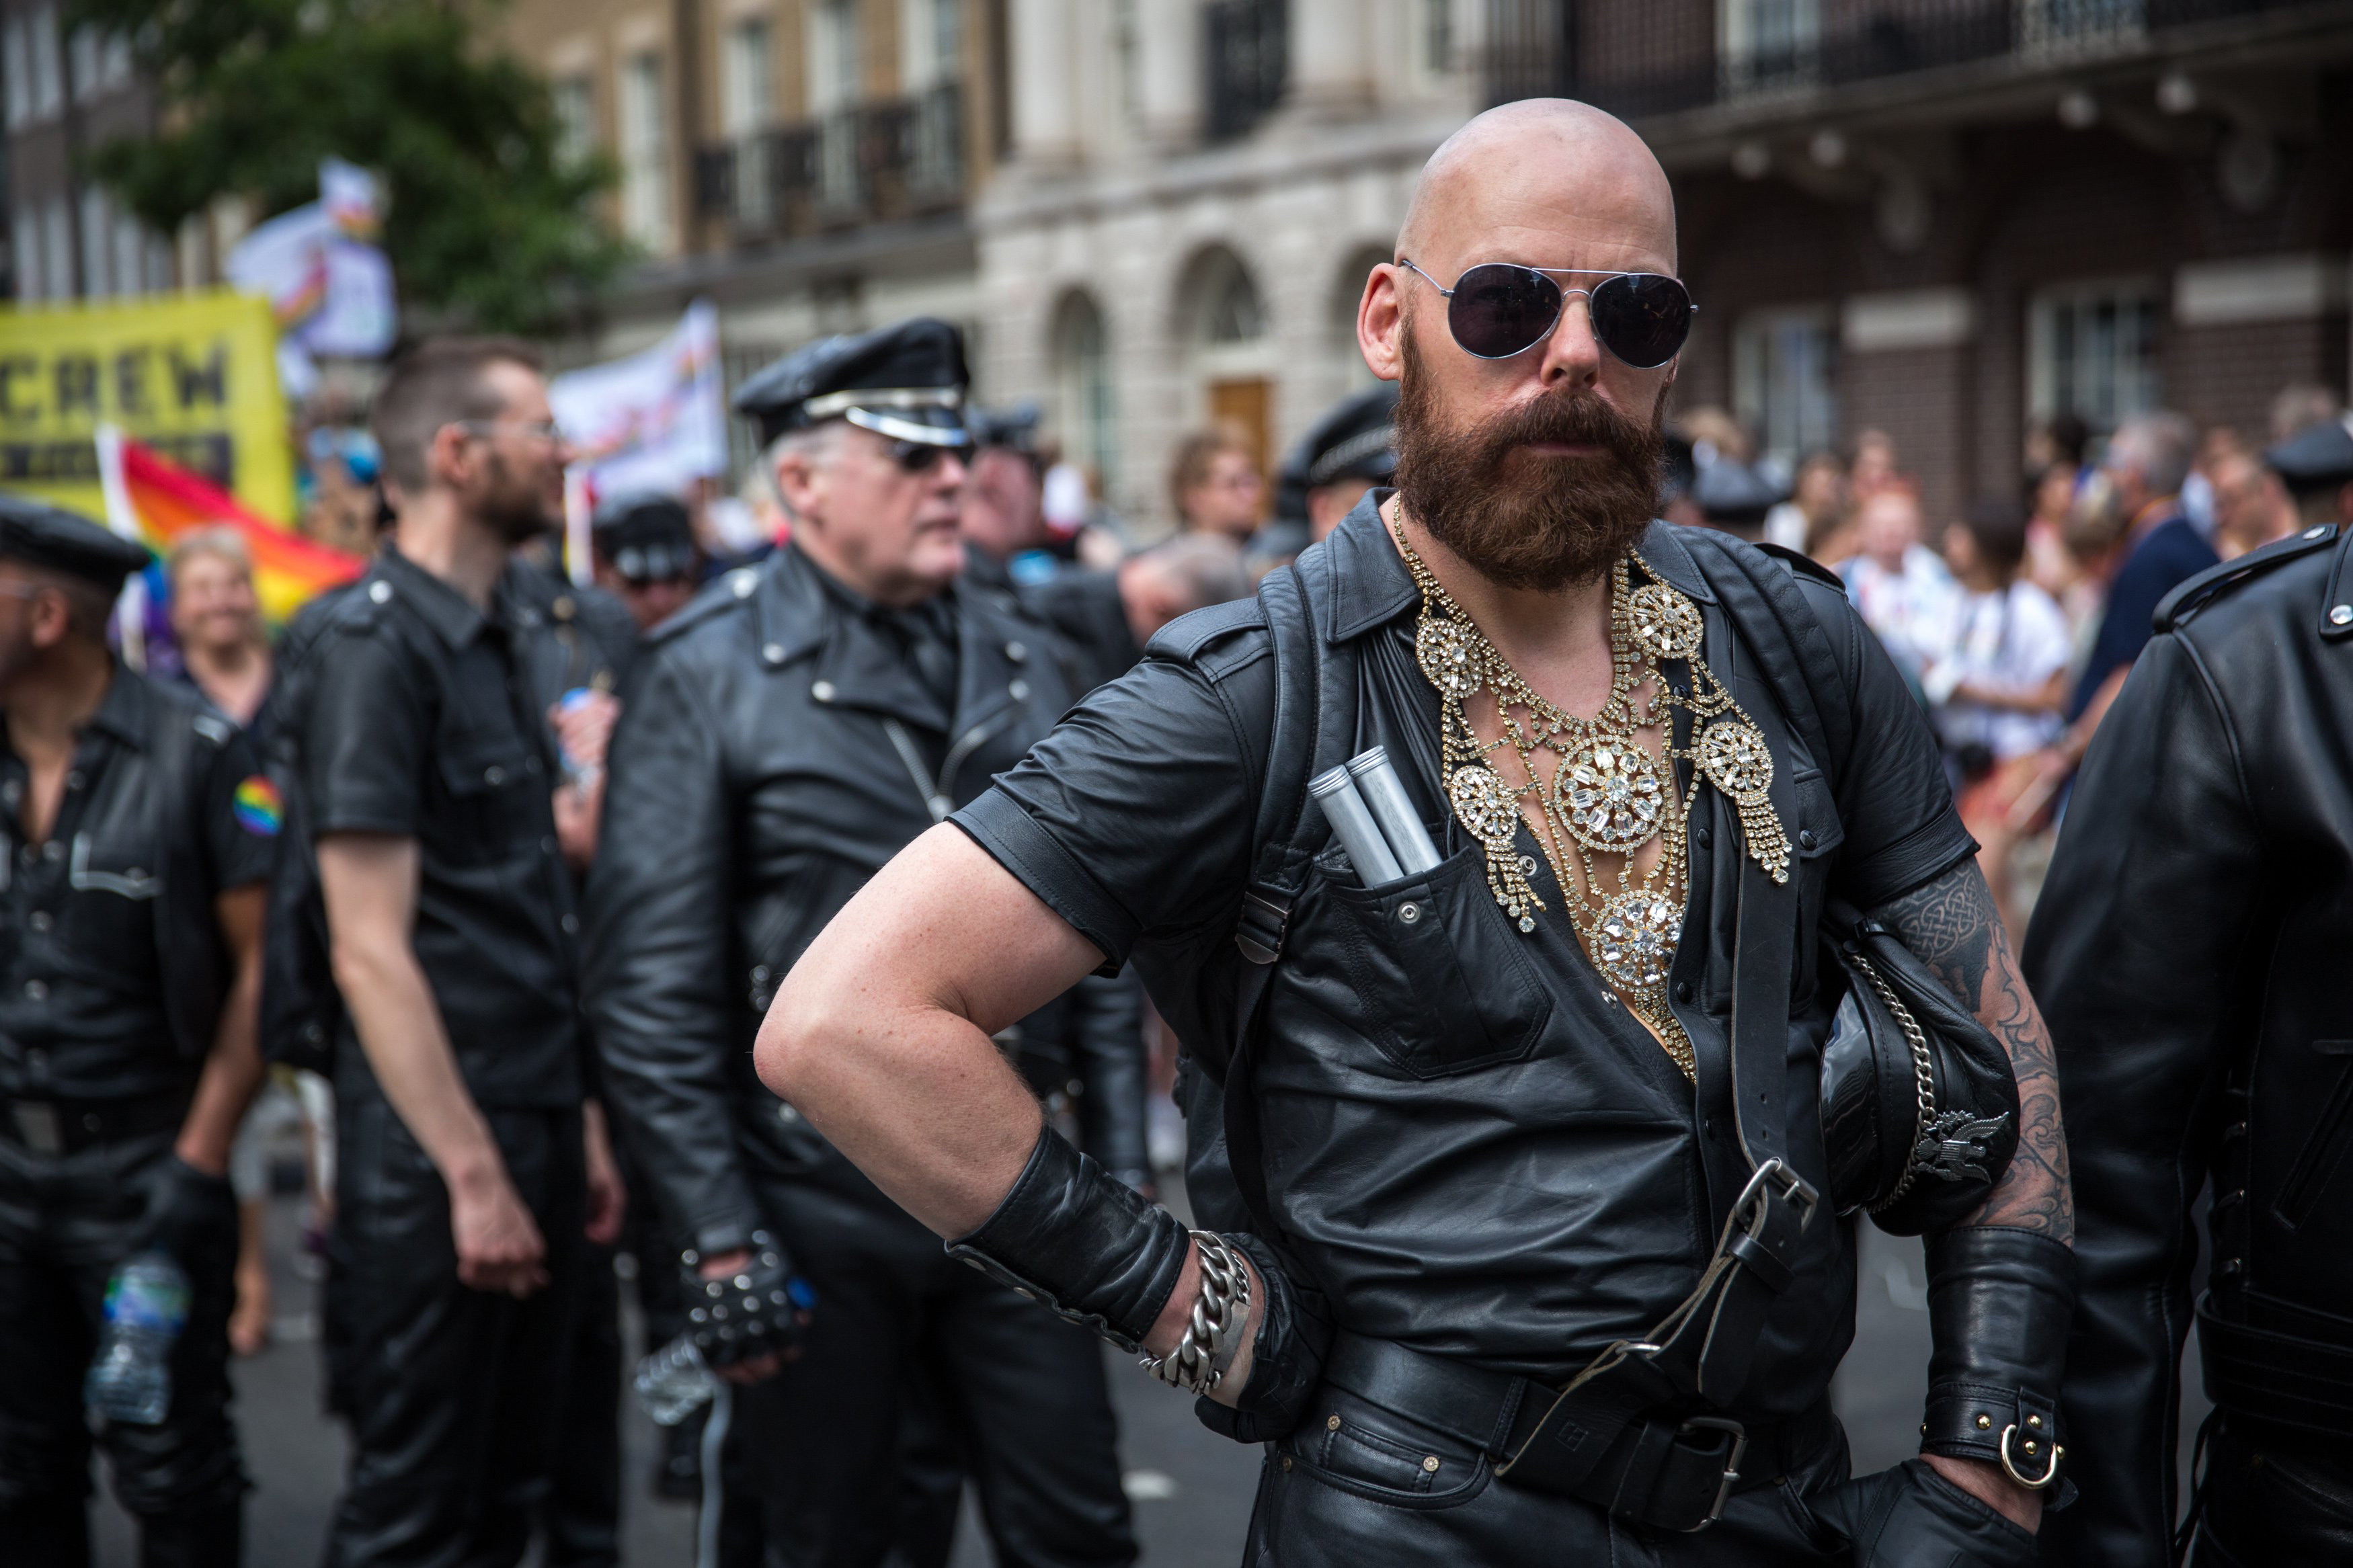 People take part in the annual Pride in London Parade on June 27, 2015 in London.